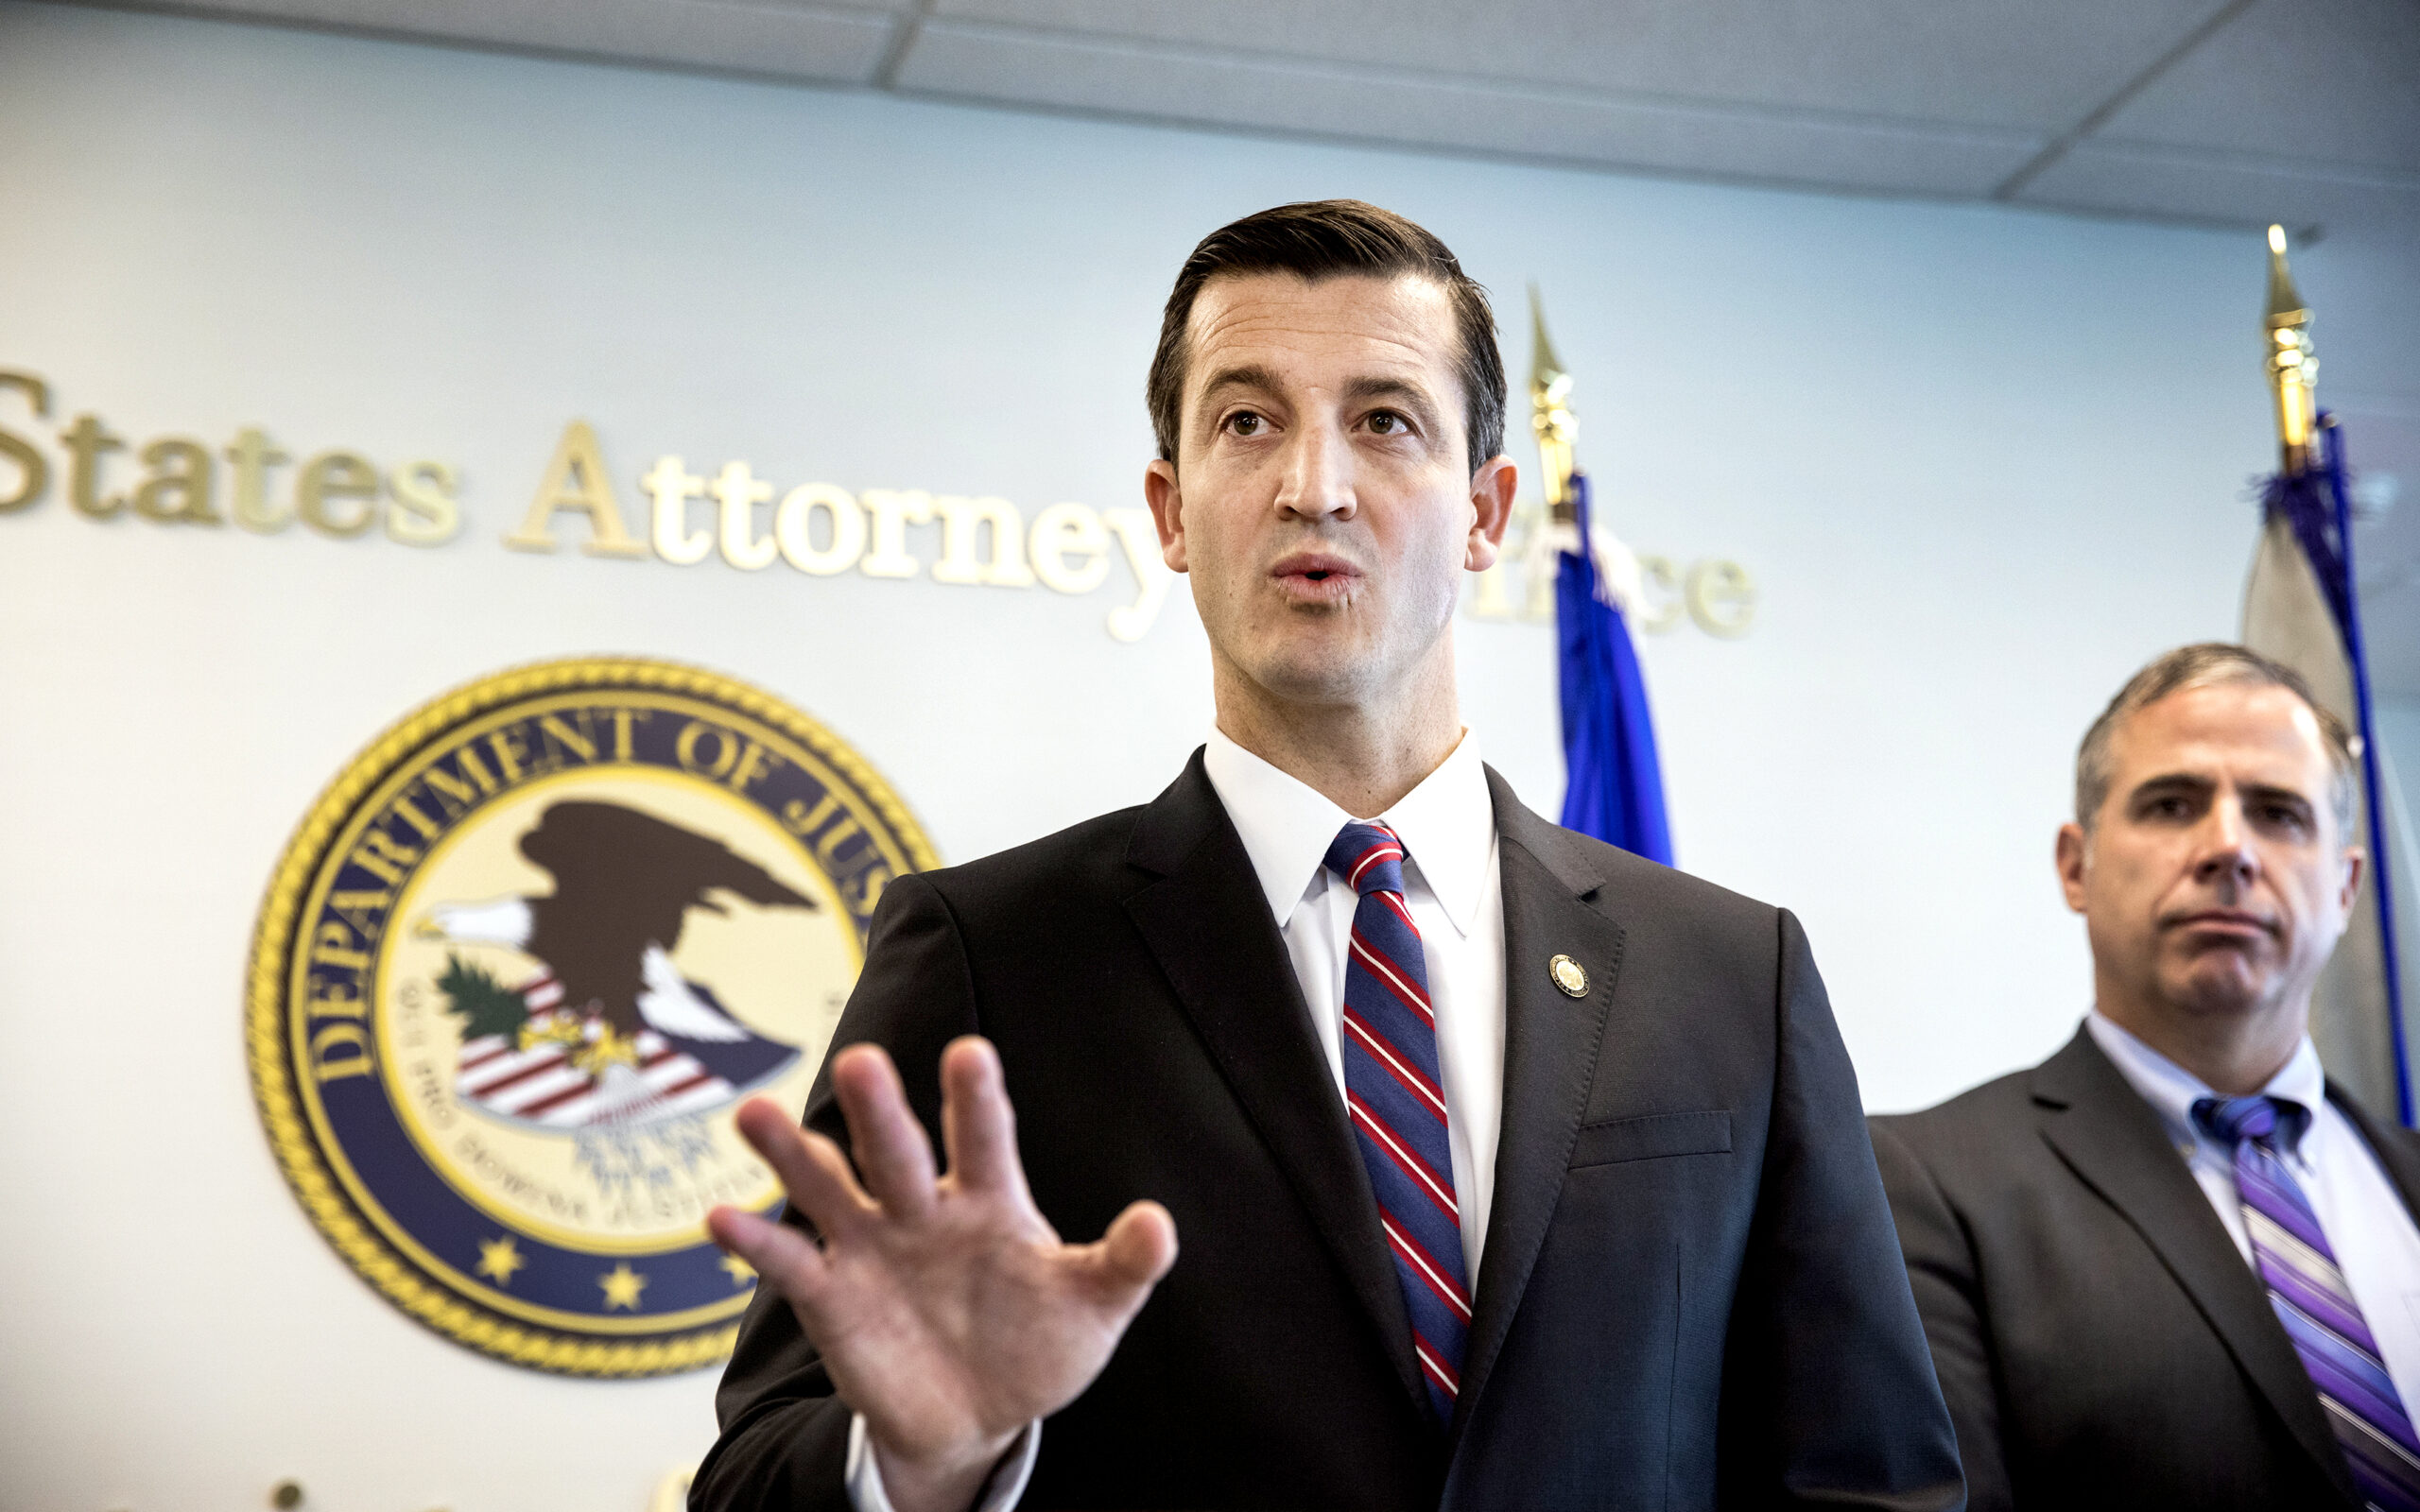 Nicholas A. Trutanich, United States Attorney for the District of Nevada and Ray Johnson, Assistant Special Agent in Charge for the Federal Bureau of Investigation